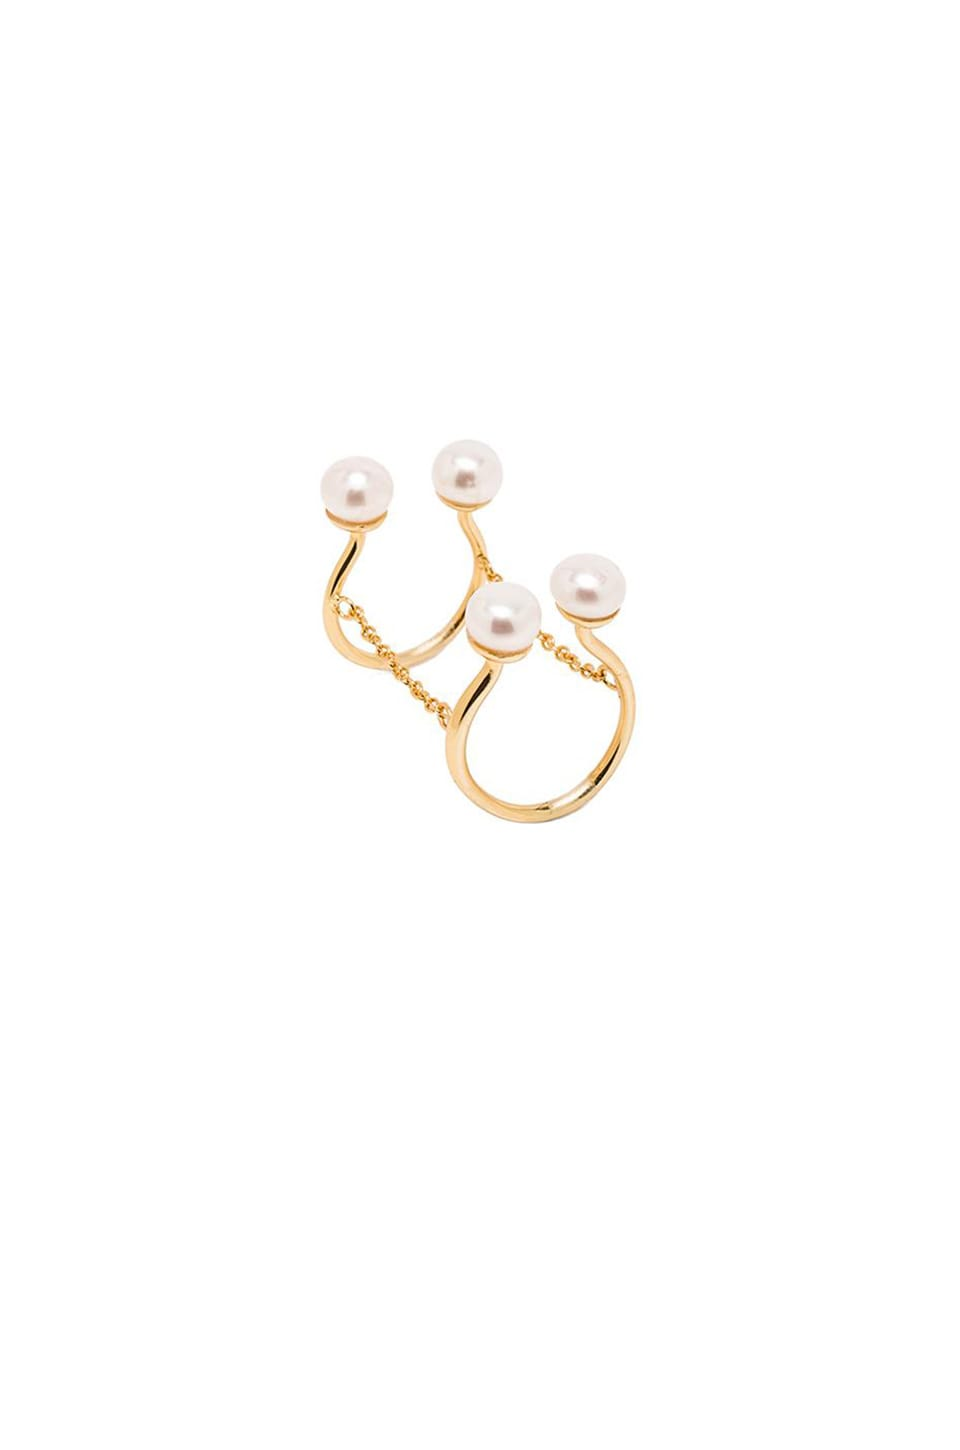 Alex Mika Quadru Pearl Ring in Gold